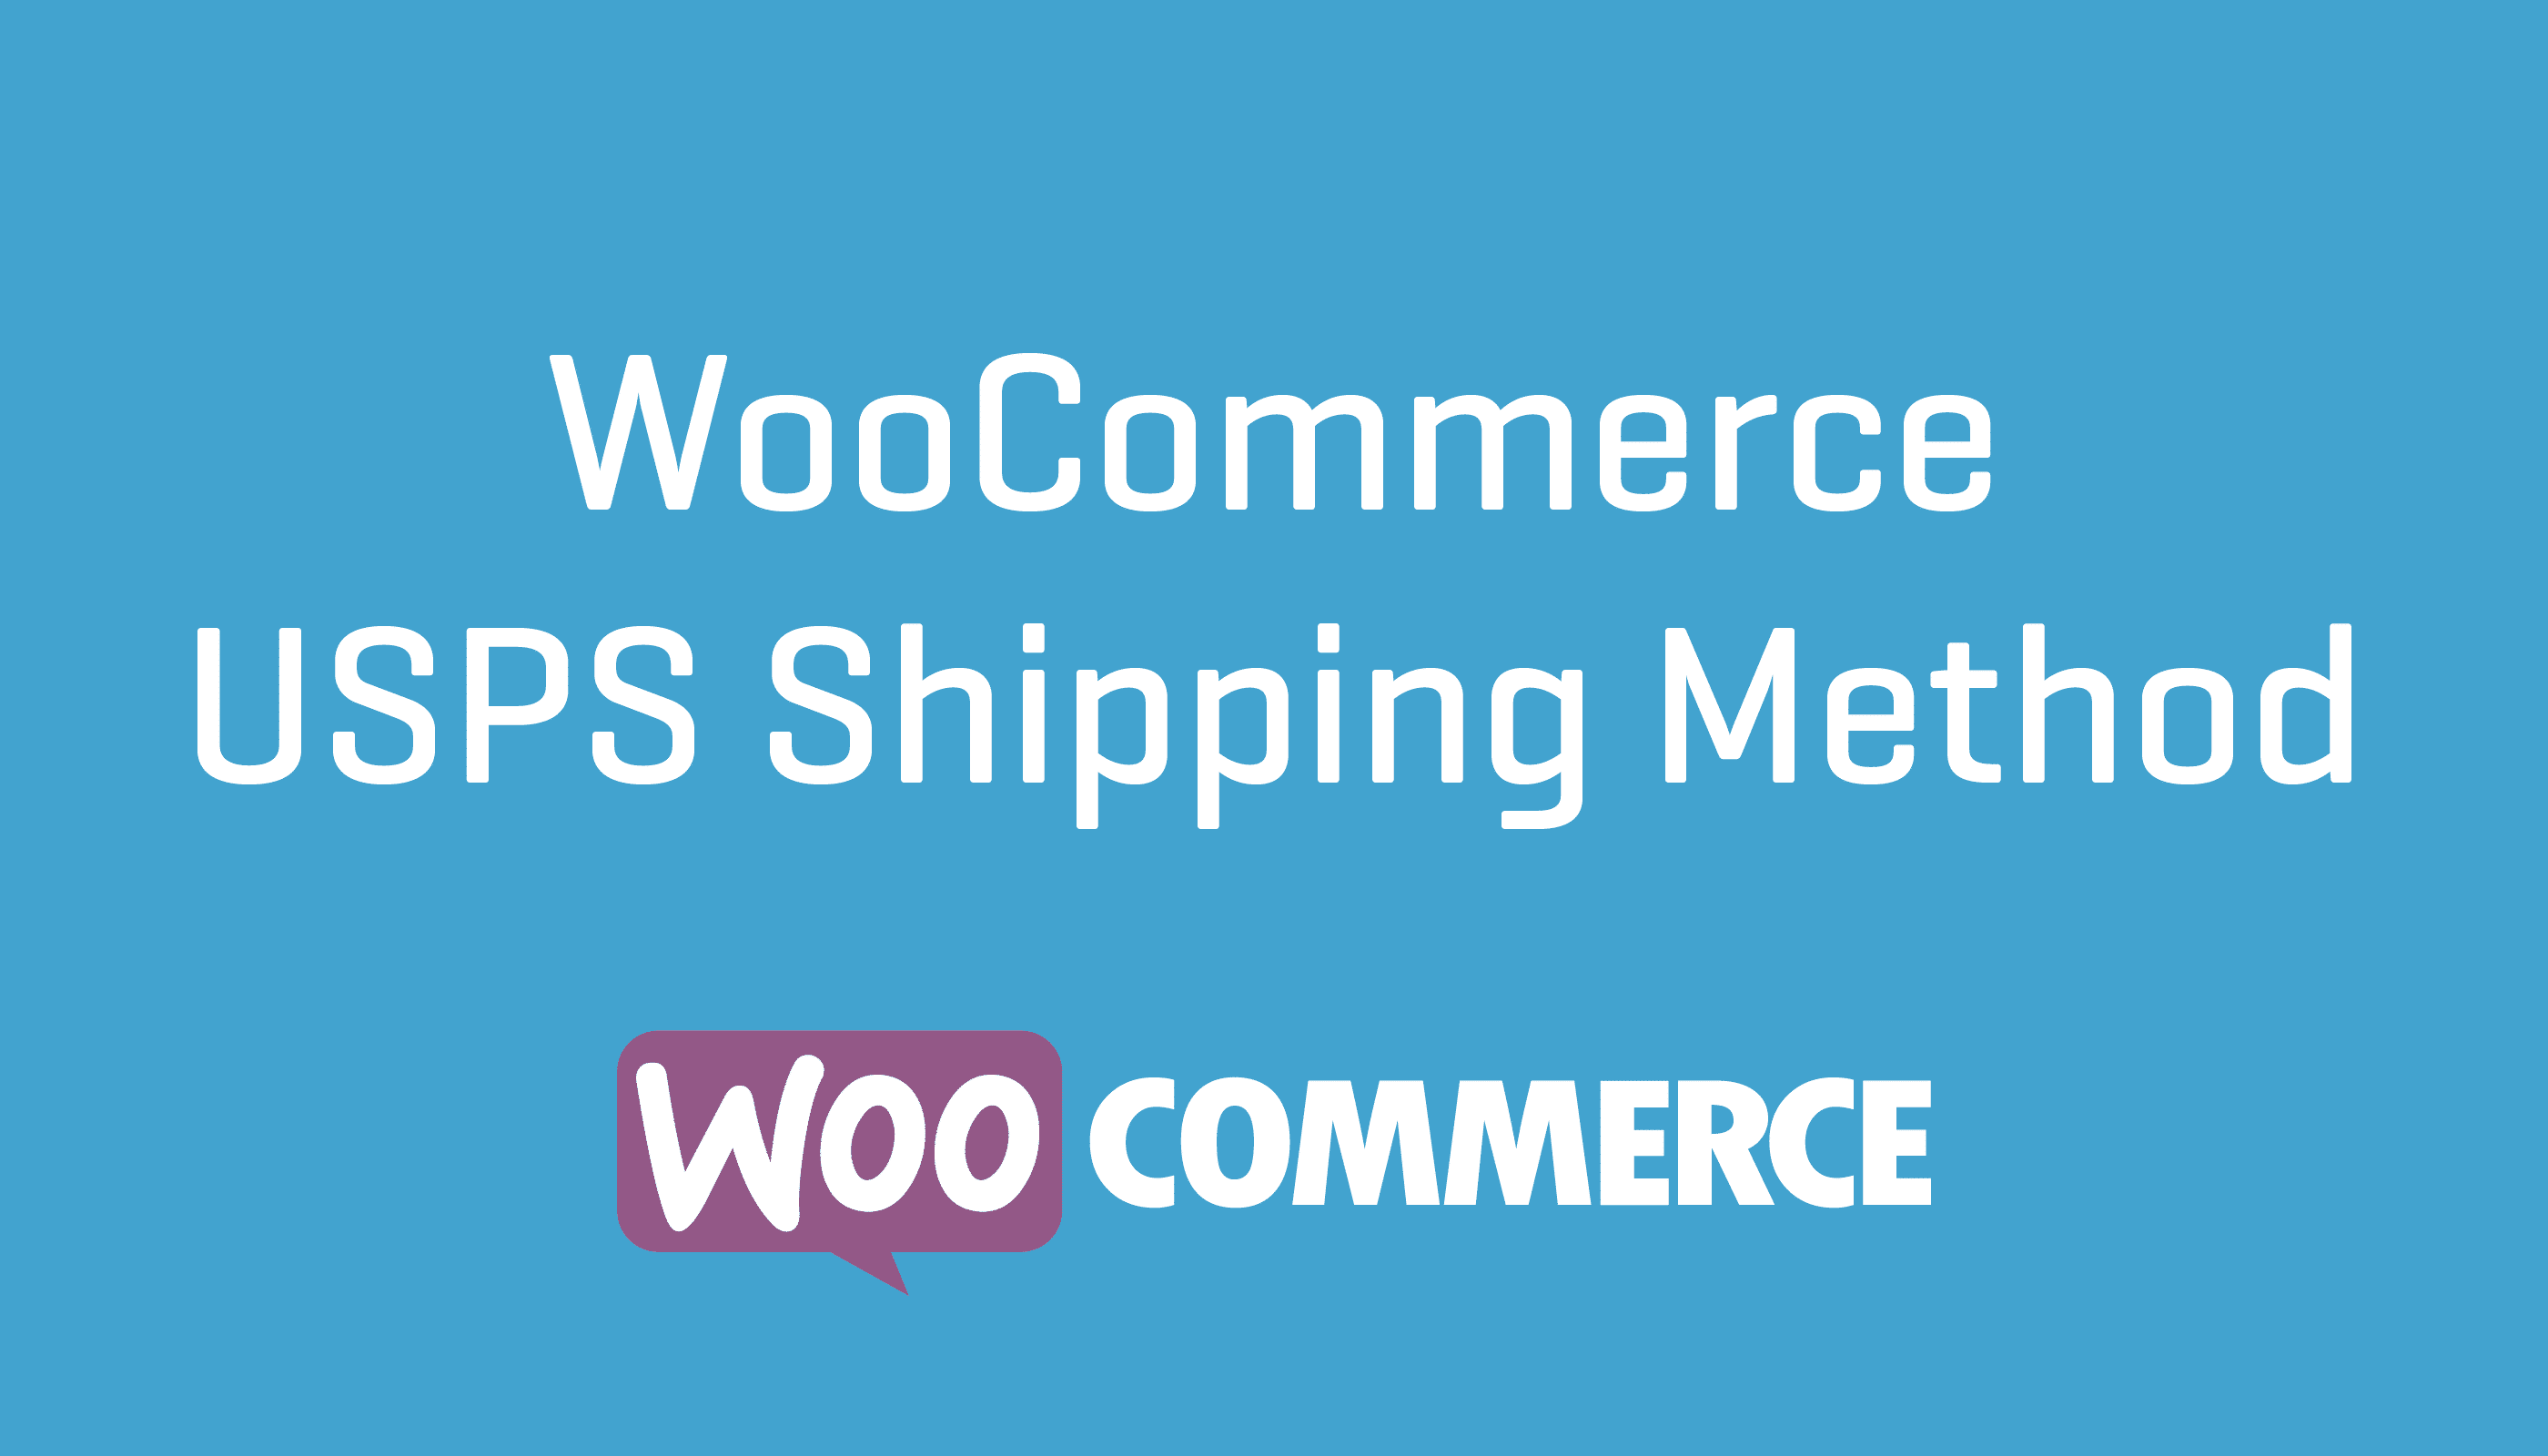 WooCommerce USPS Shipping Method (4.4.47)